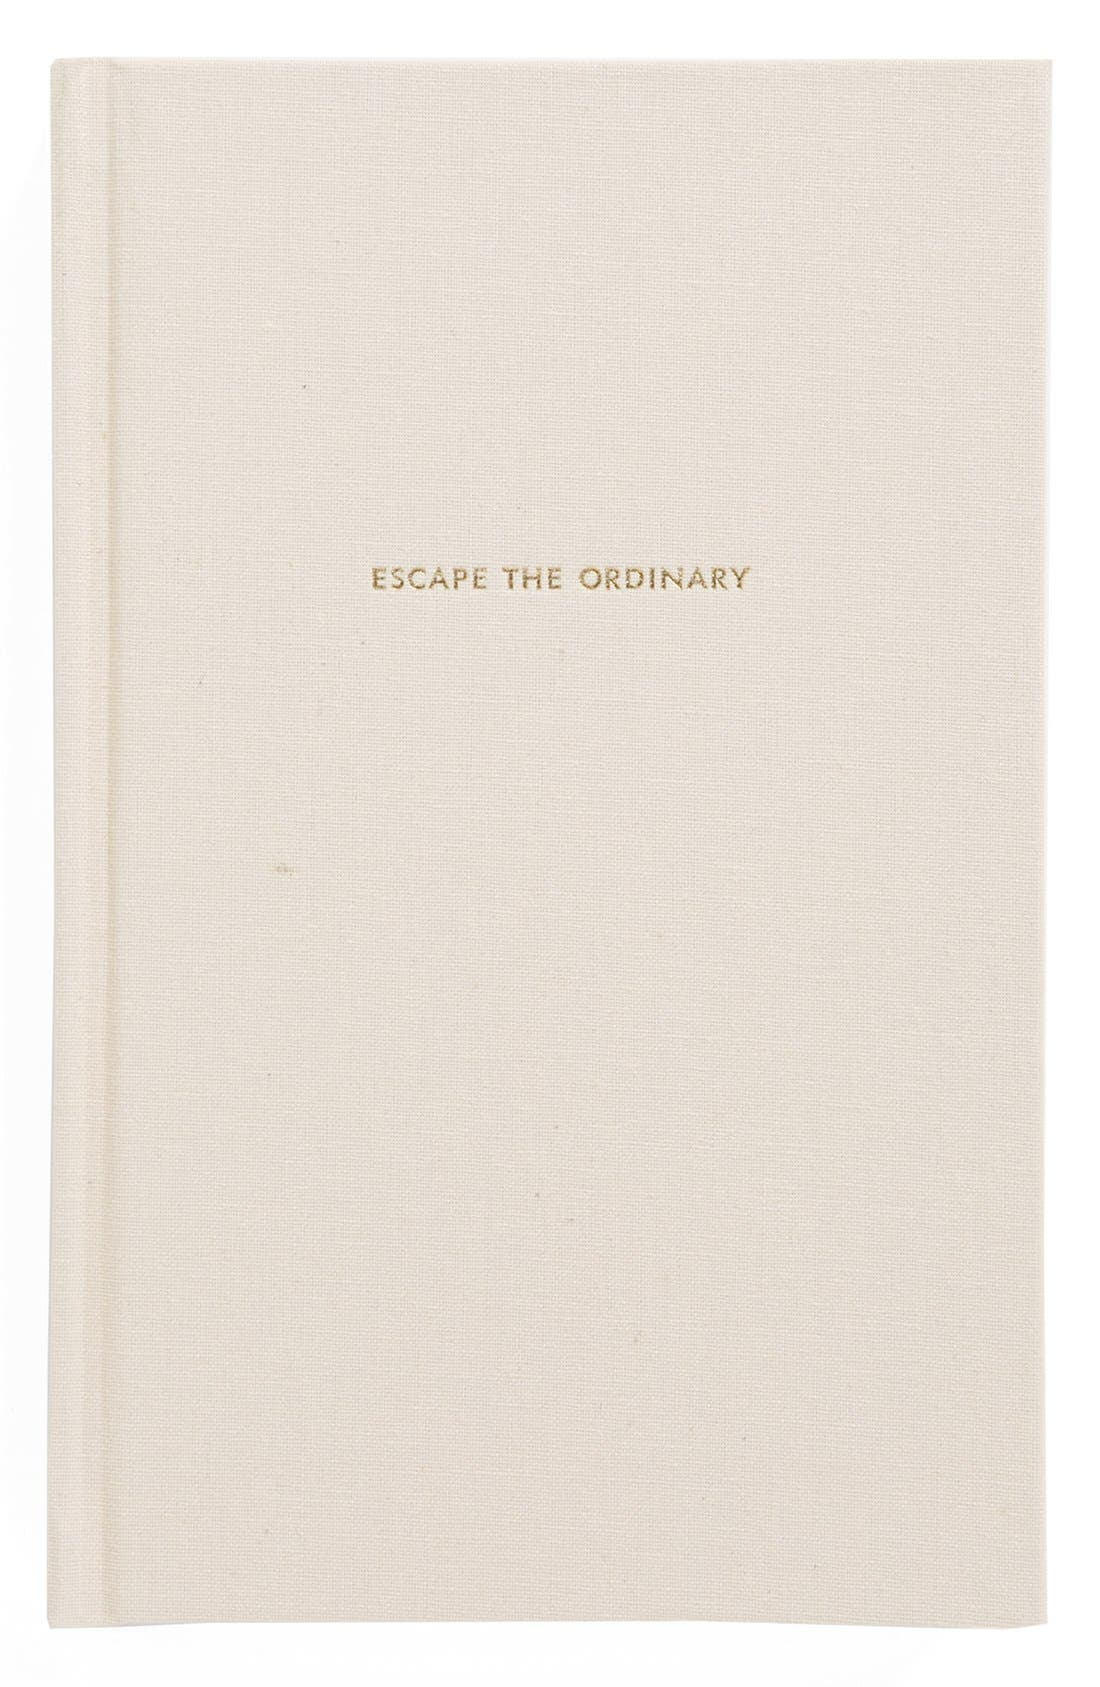 Alternate Image 1 Selected - kate spade new york 'escape the ordinary' journal